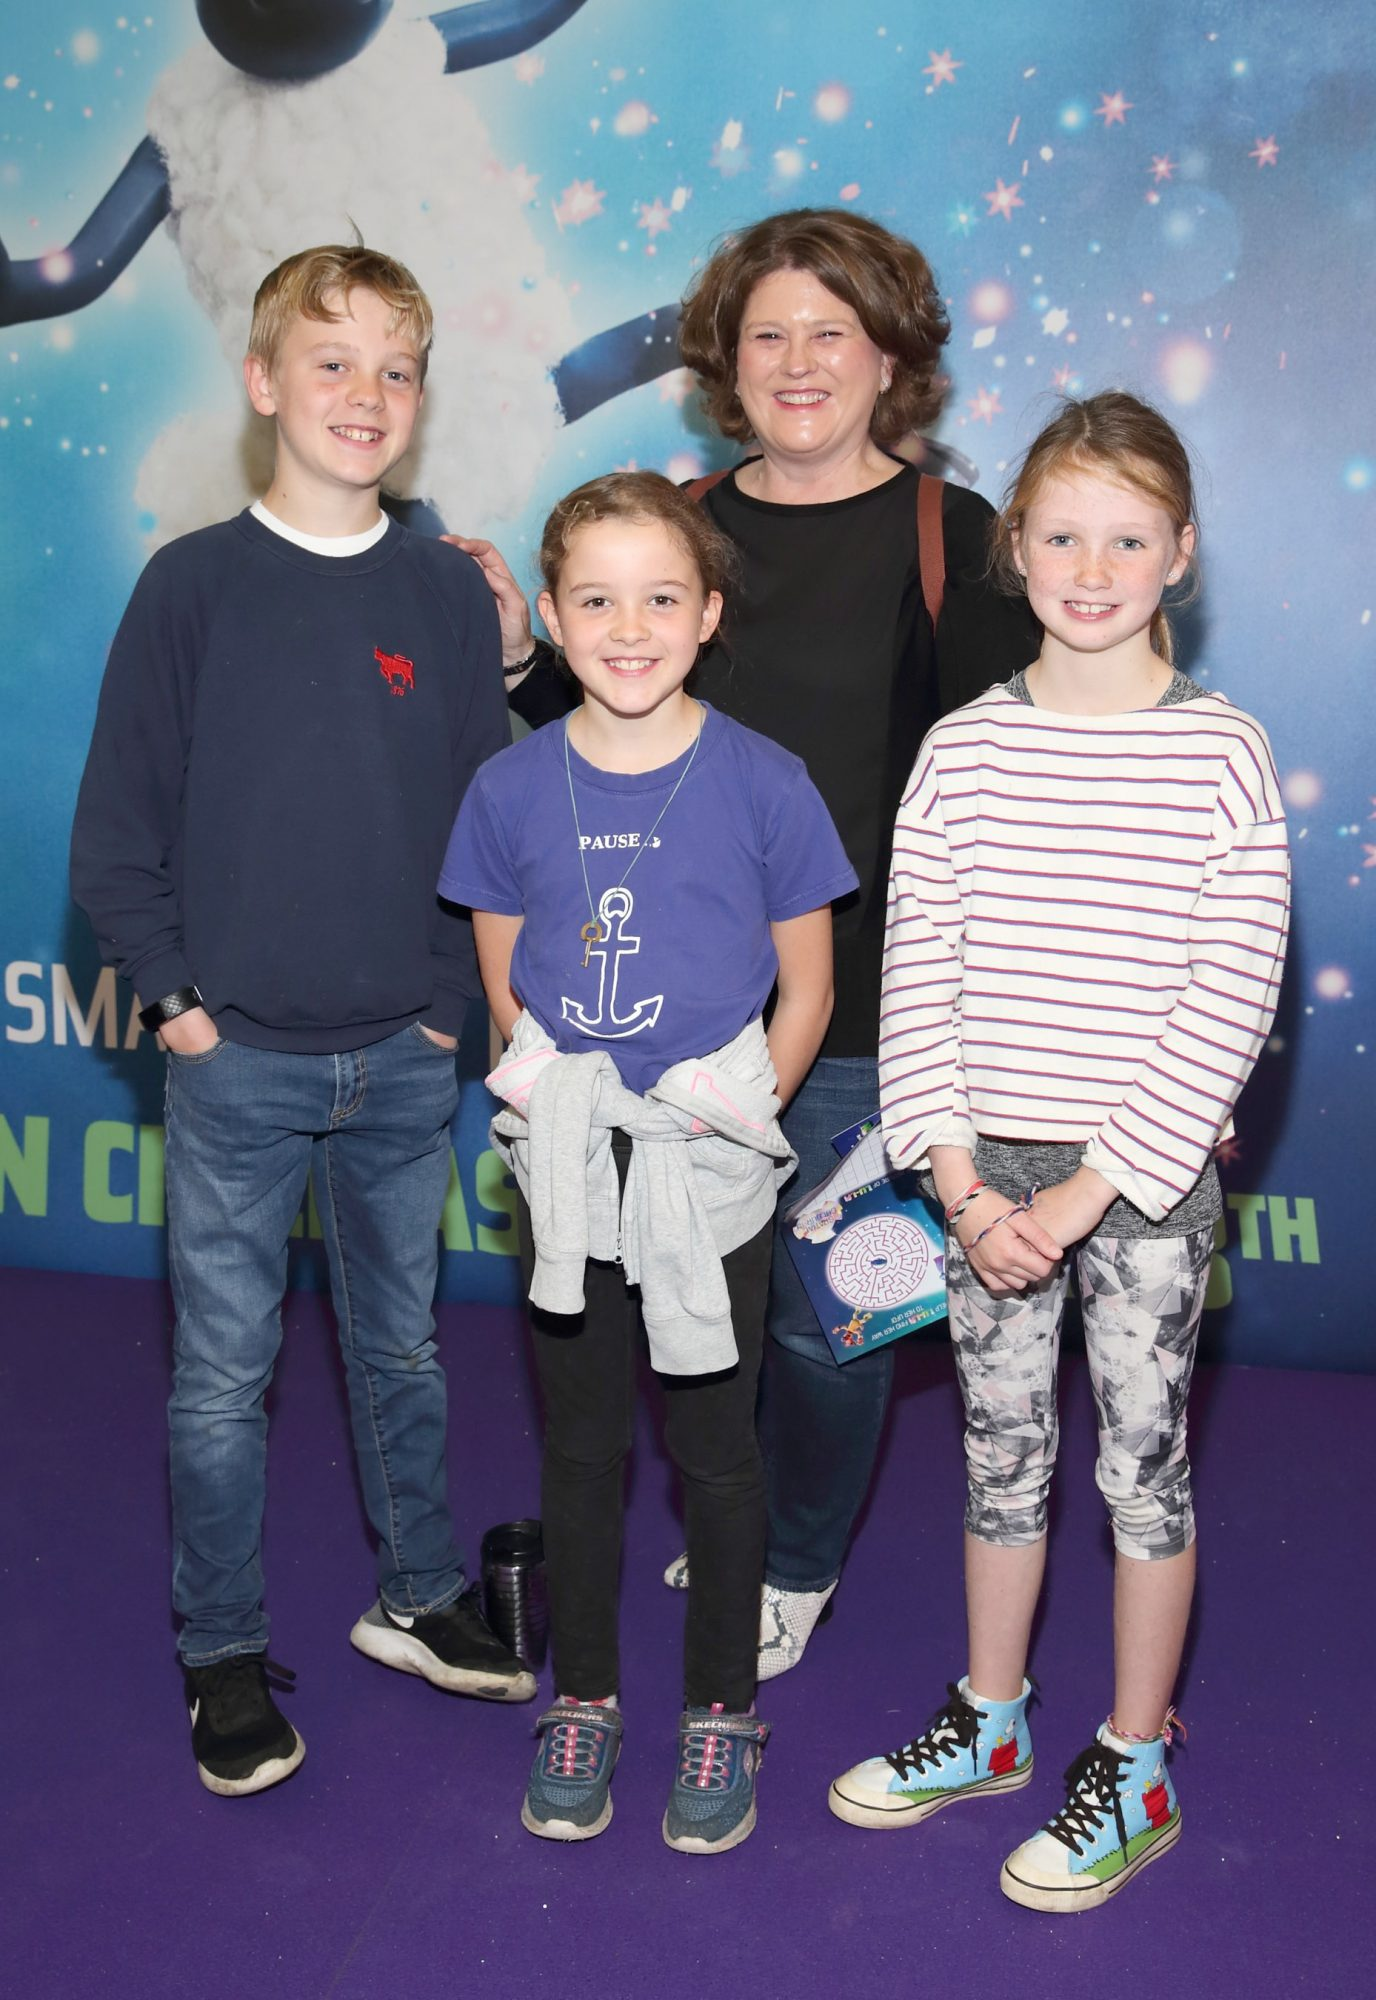 Kate Belinski, Ben Forrest, Alice Forrest and Norah Ardiff at the special preview screening of Shaun the Sheep at the Odeon Cinema In Point Square, Dublin.  Pic: Brian McEvoy Photography